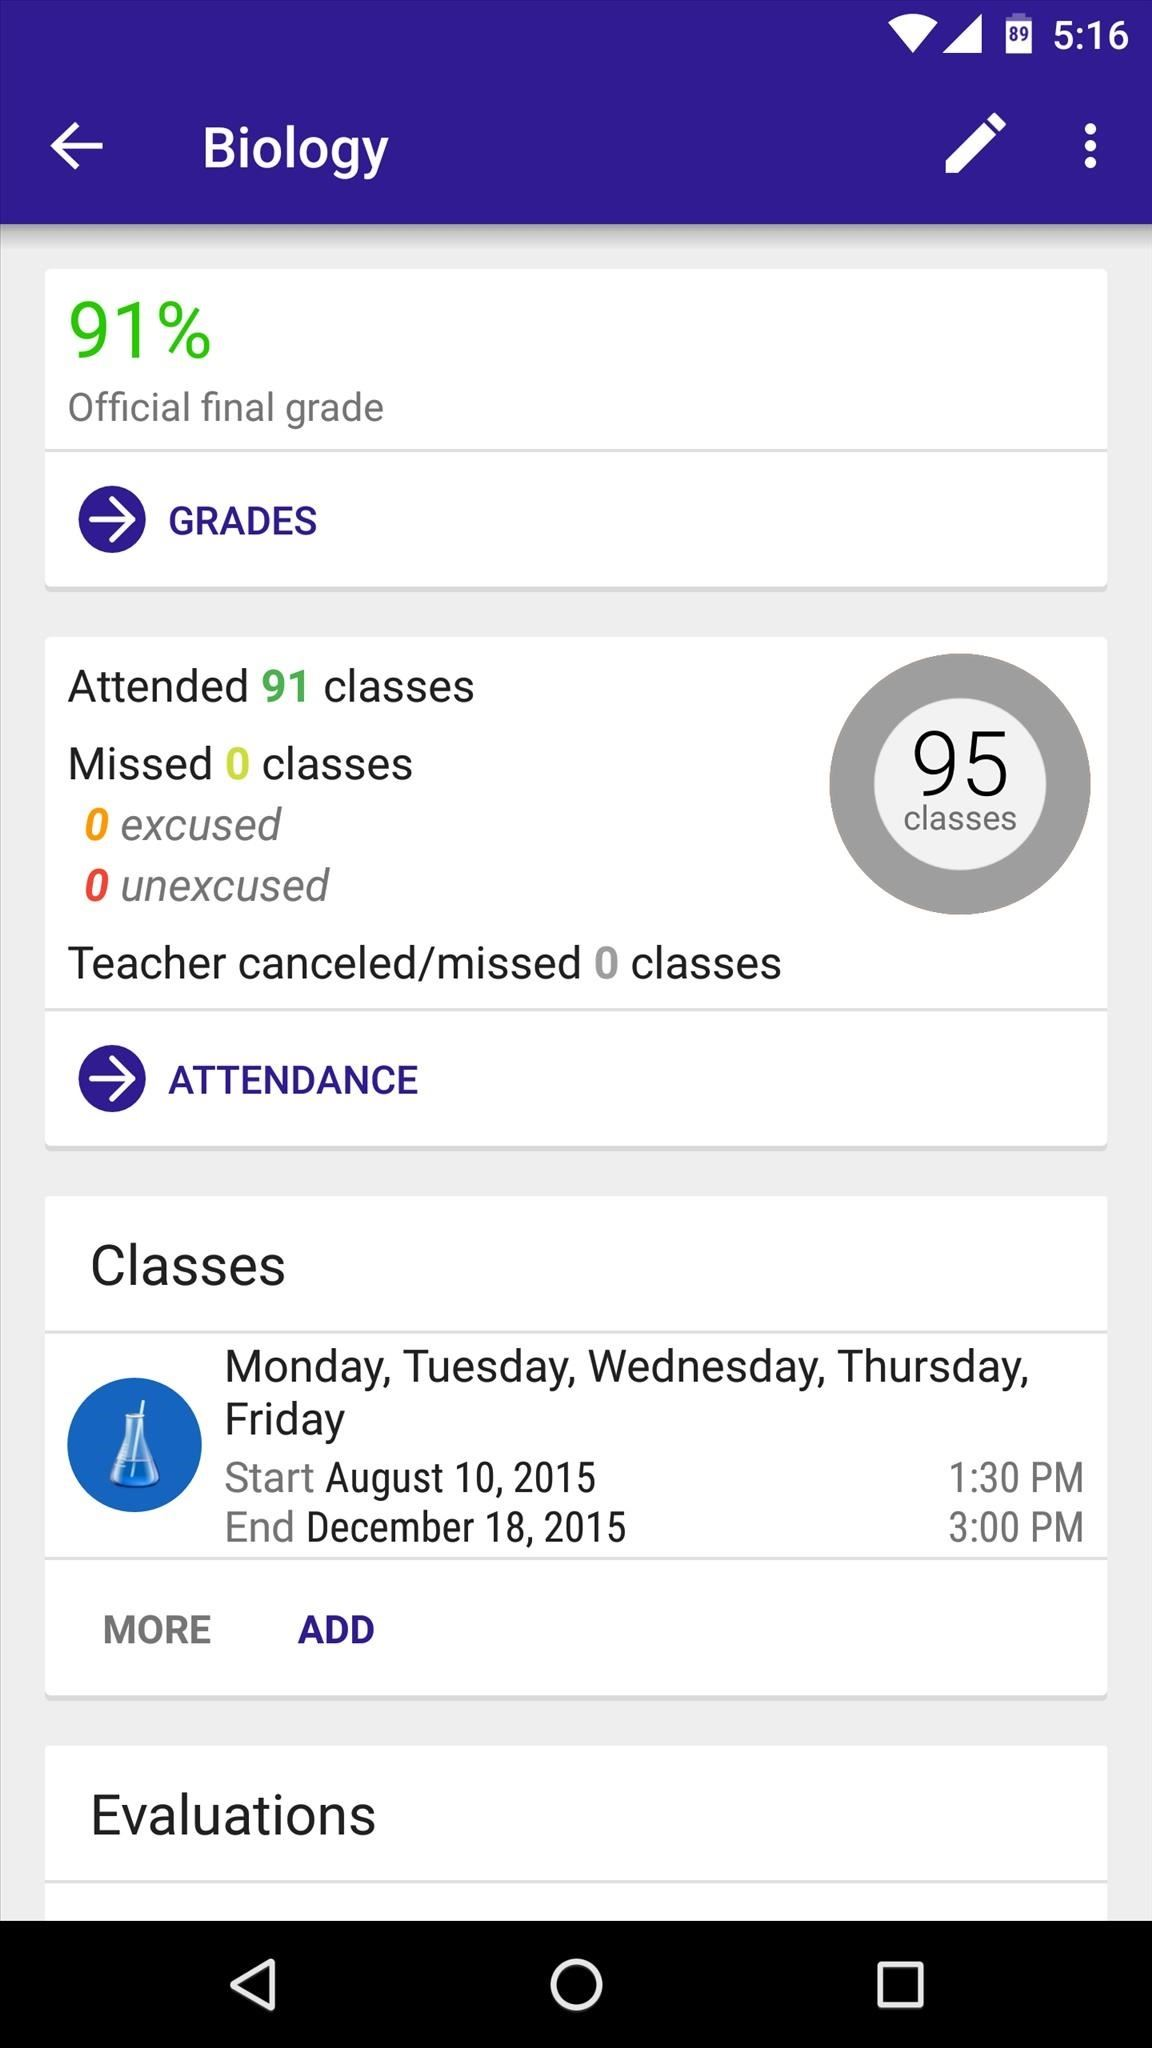 11 Android Apps You Should Be Using for Better Grades in School